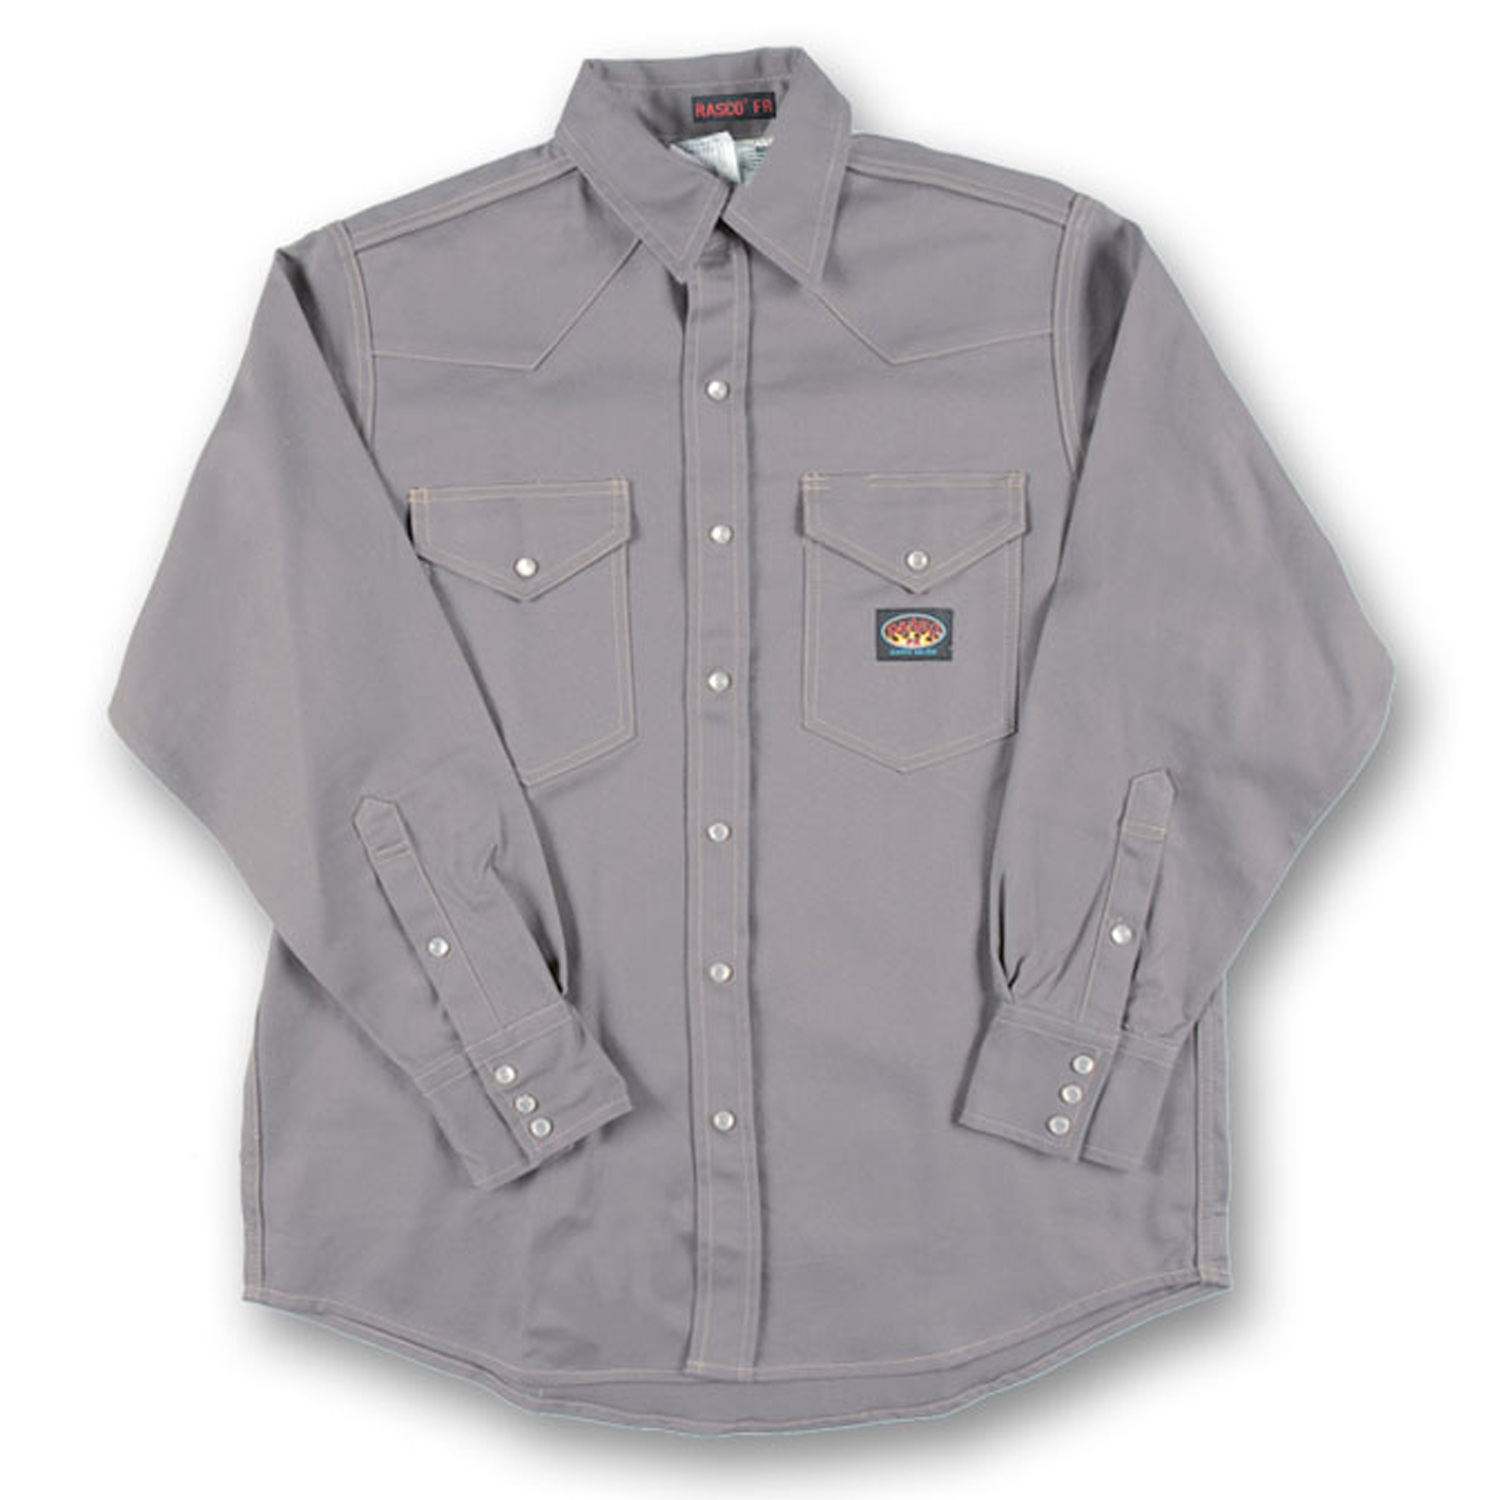 Fire resistant rasco lightweight gray shirt gr754 for Flame resistant work shirts